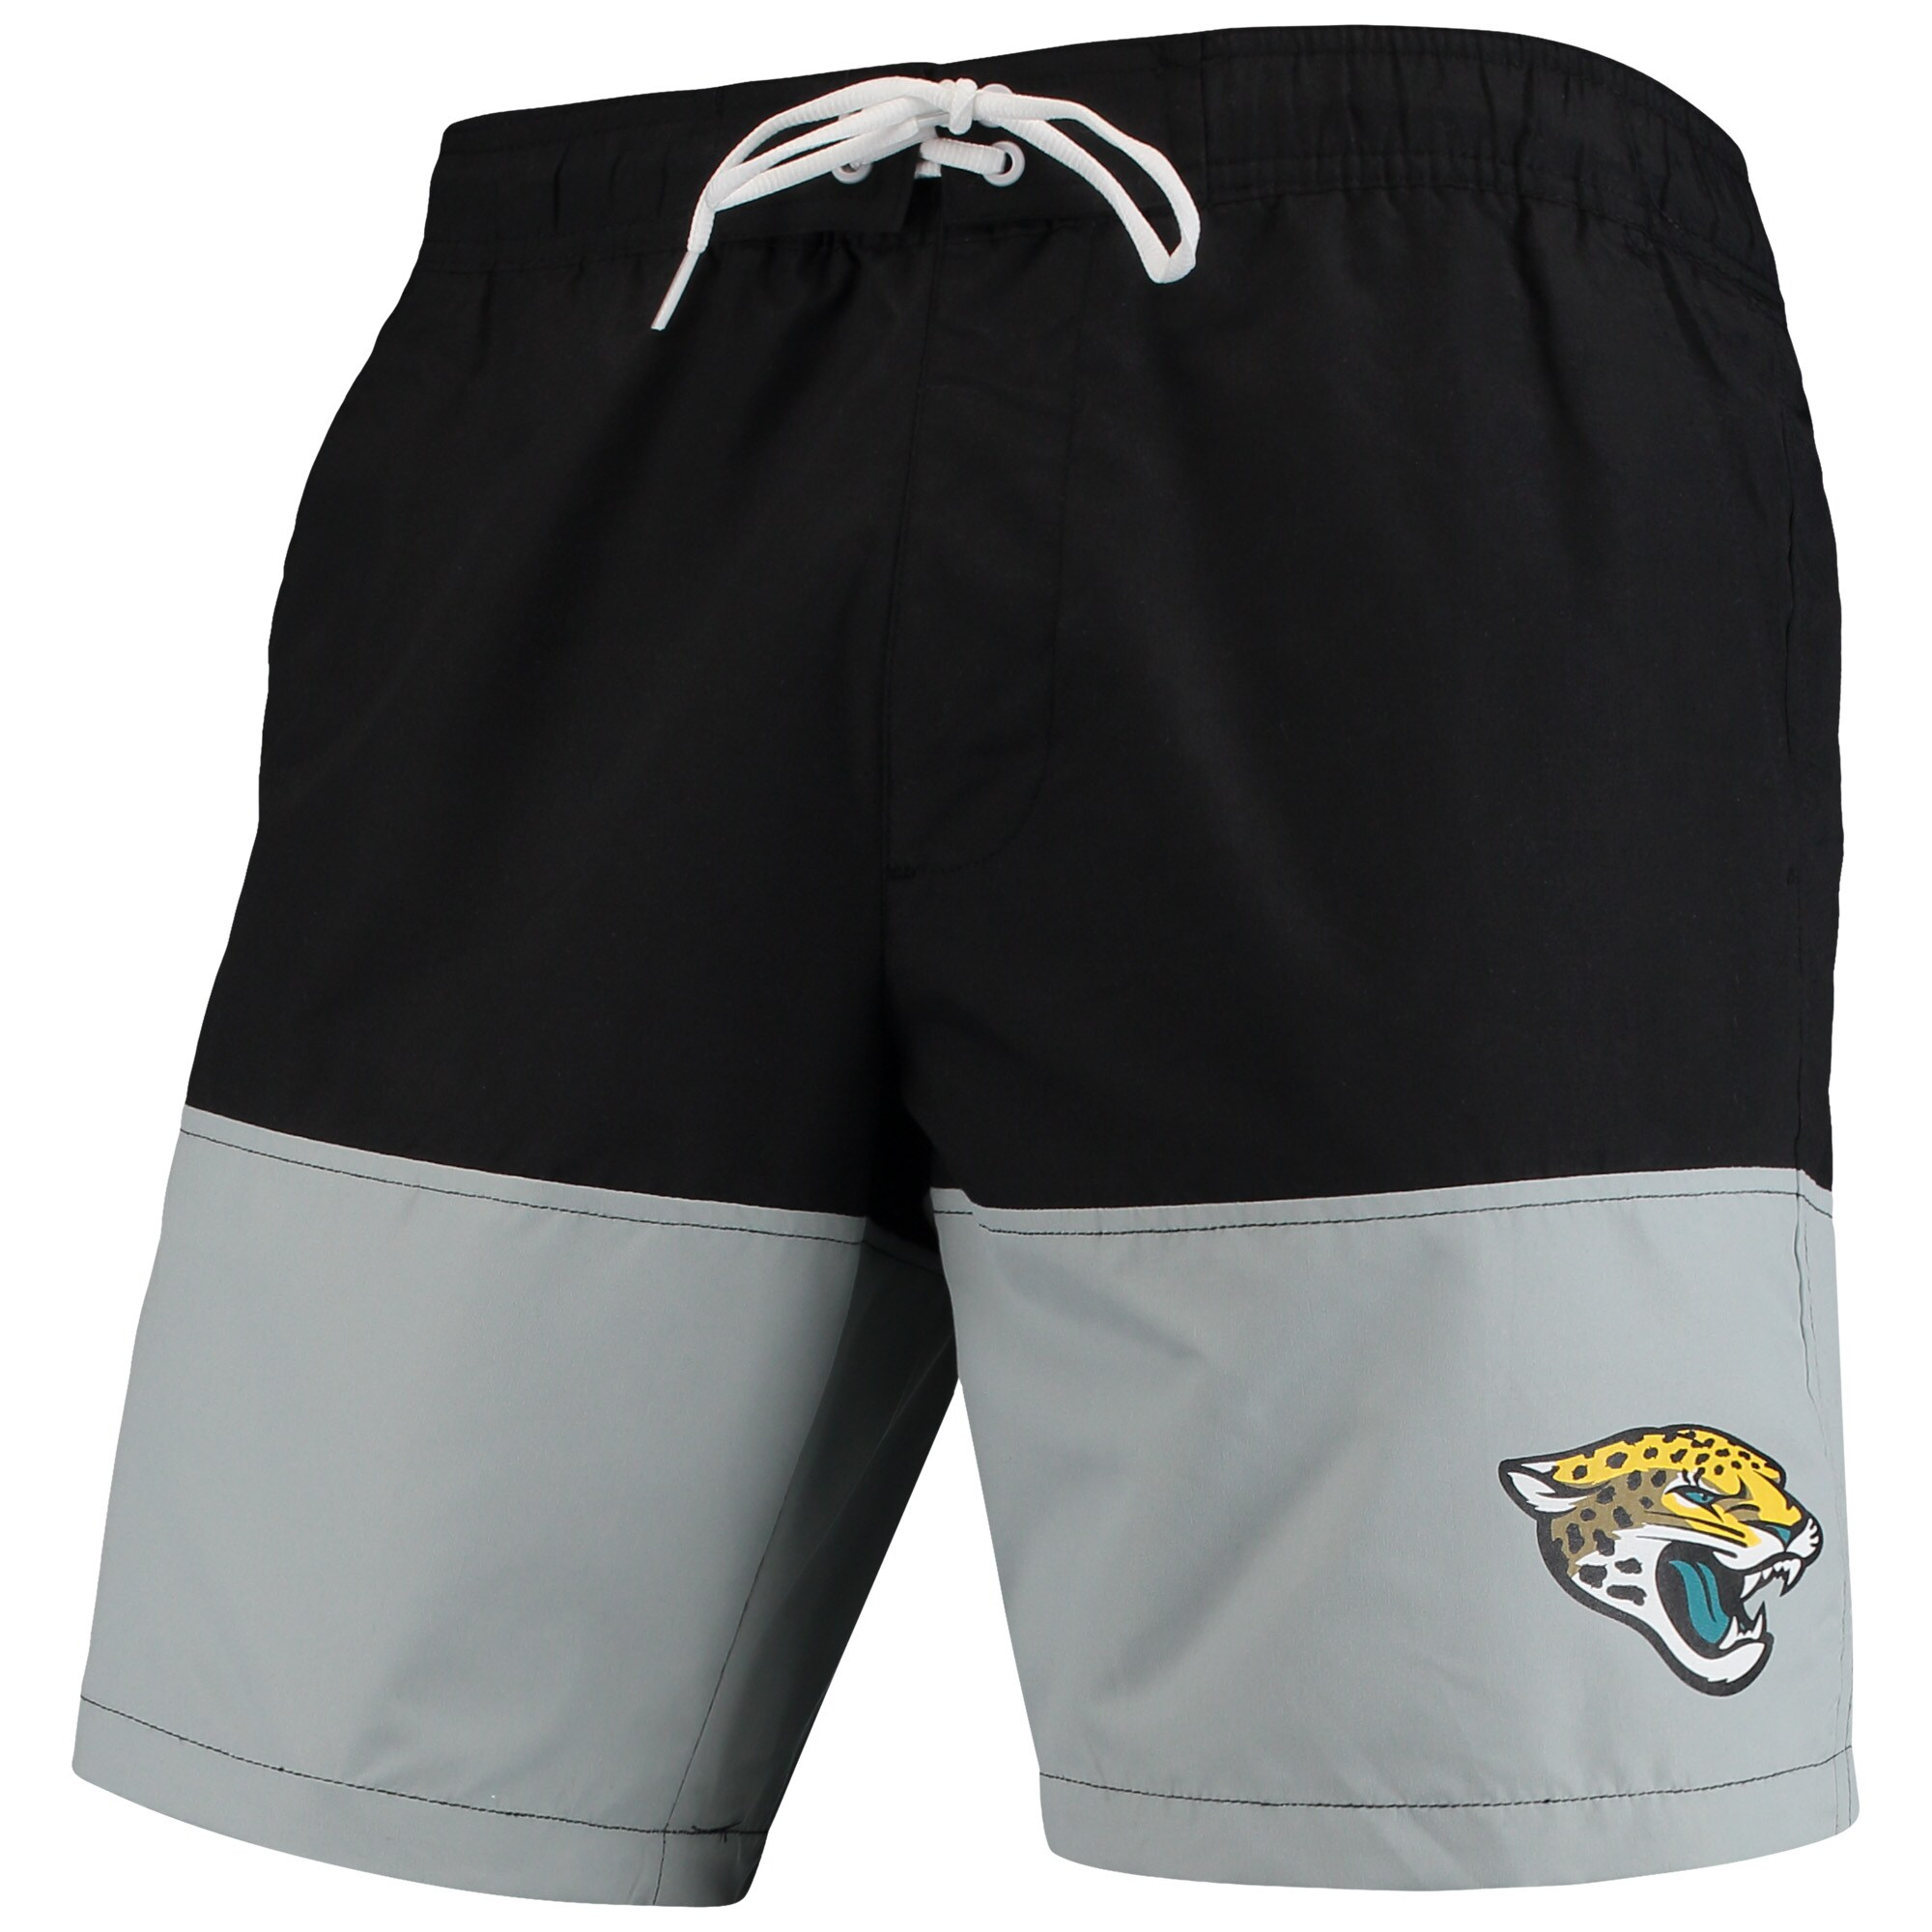 Jacksonville Jaguars G-III Sports by Carl Banks Anchor Volley Swim Trunks - Black/Gray